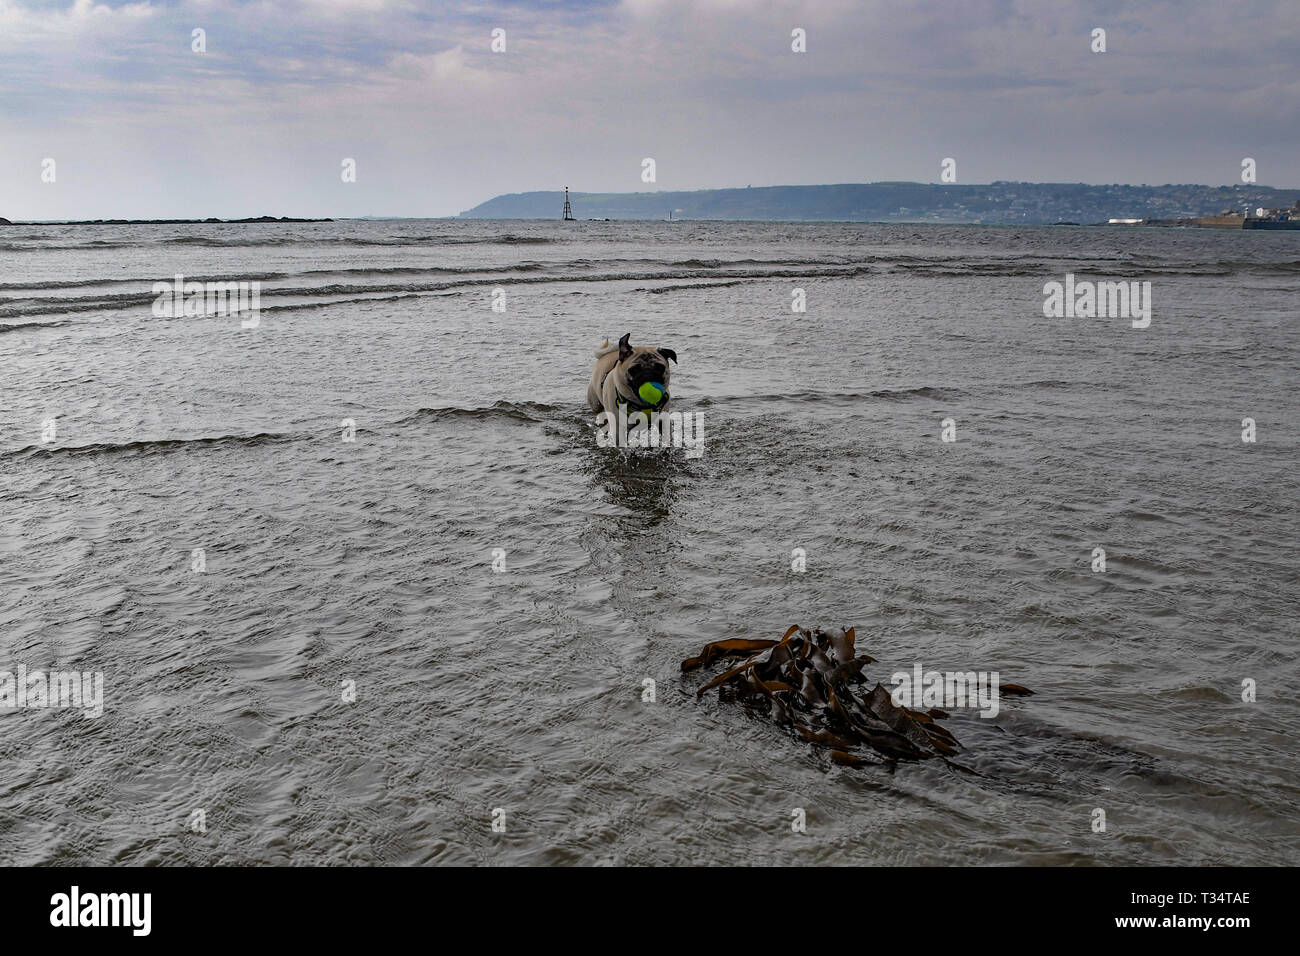 Pug dog running with tennis ball in mouth on the beach in Cornwall - Stock Image